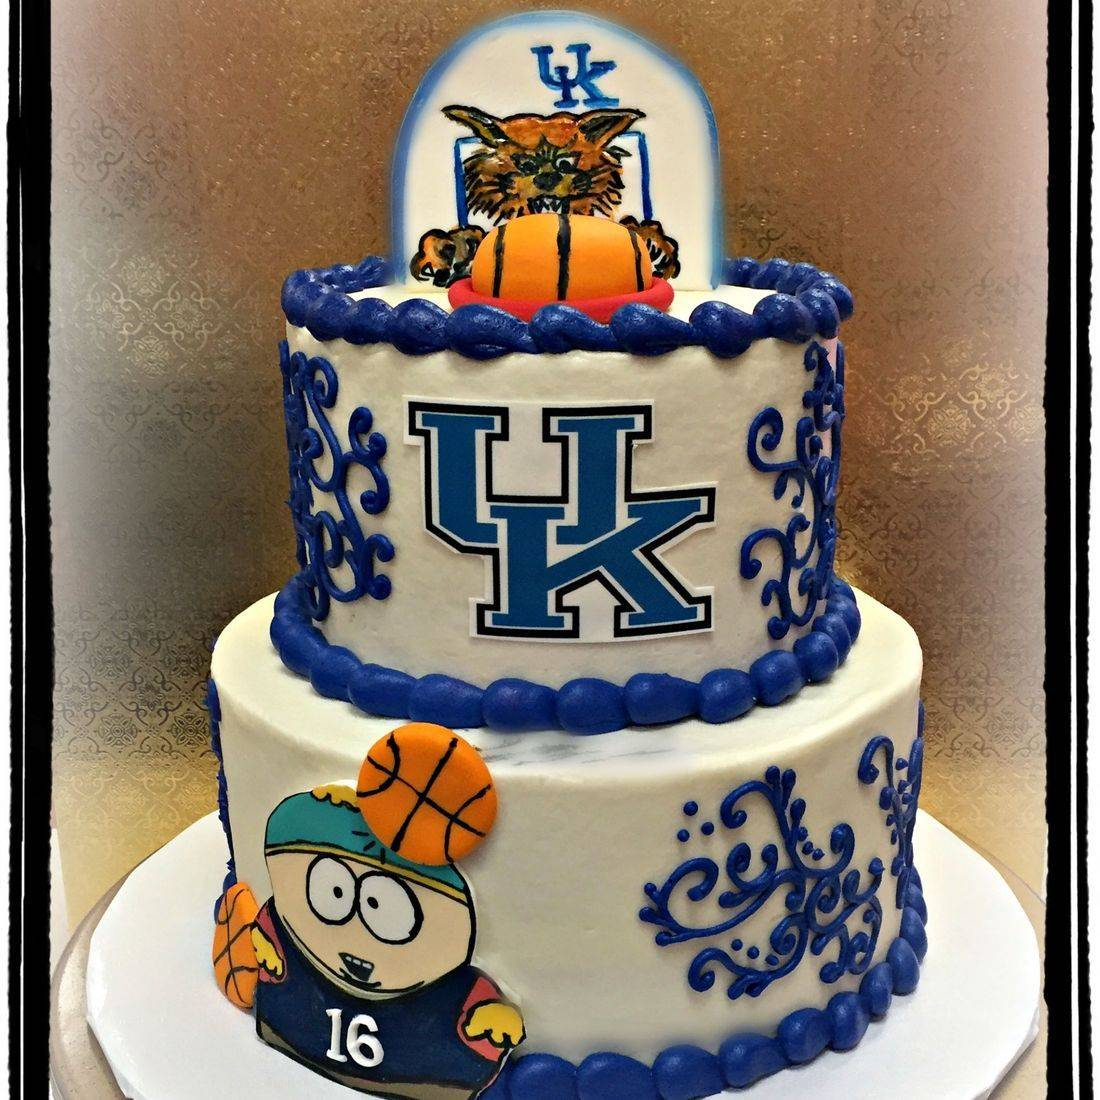 UK birthday cake University of Kentucky Blue Basketball cake UofK